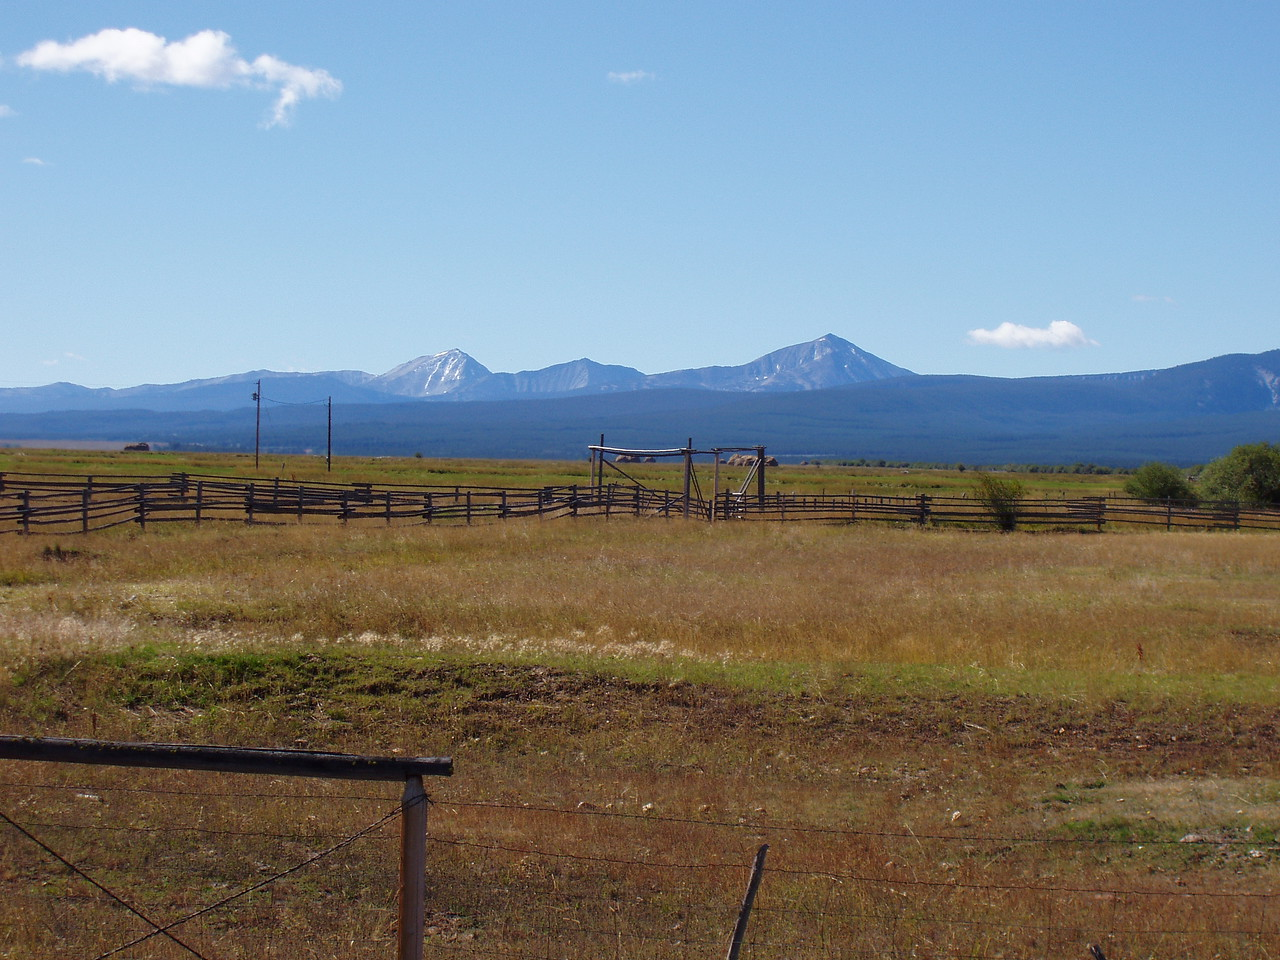 And south from the same place.  I think its the Beaverhead and Bitteroot mountains